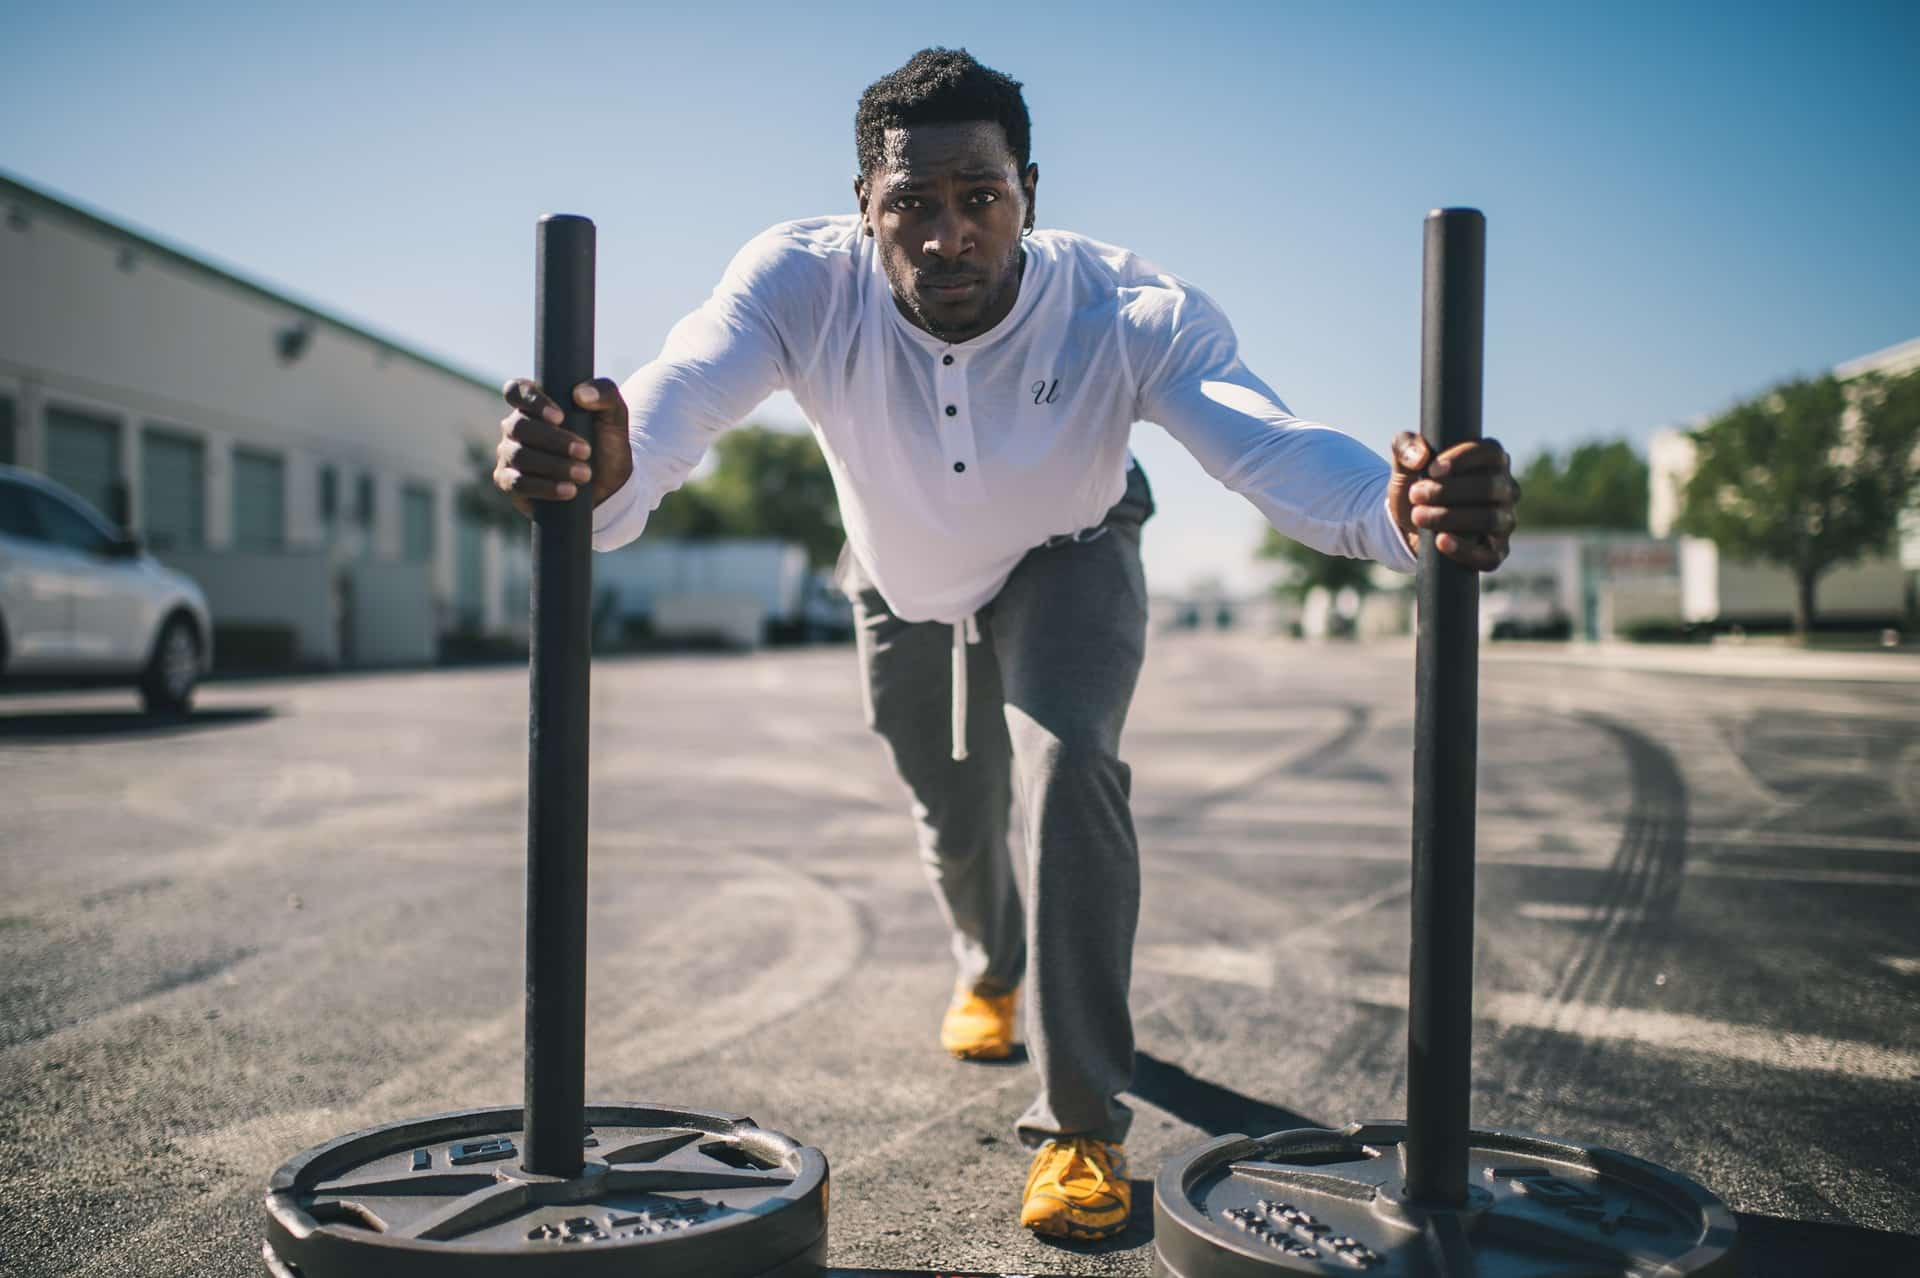 6 REASONS WHY YOU MAY NOT BE ACHIEVING YOUR FITNESS GOALS